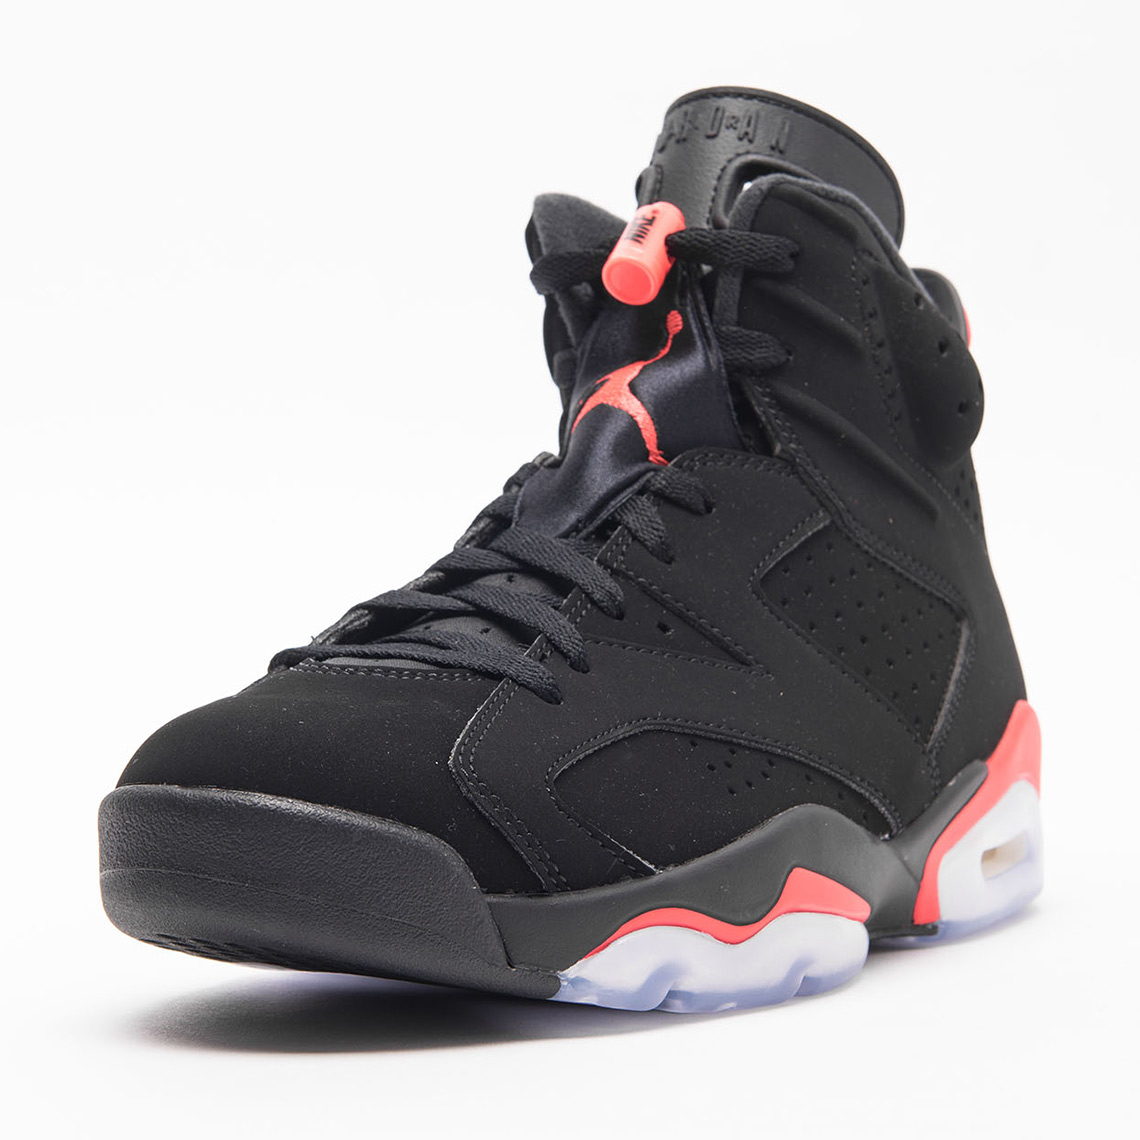 d76e3244d577a Air Jordan 6 Retro Black Infrared 384664-060 Release Date ...